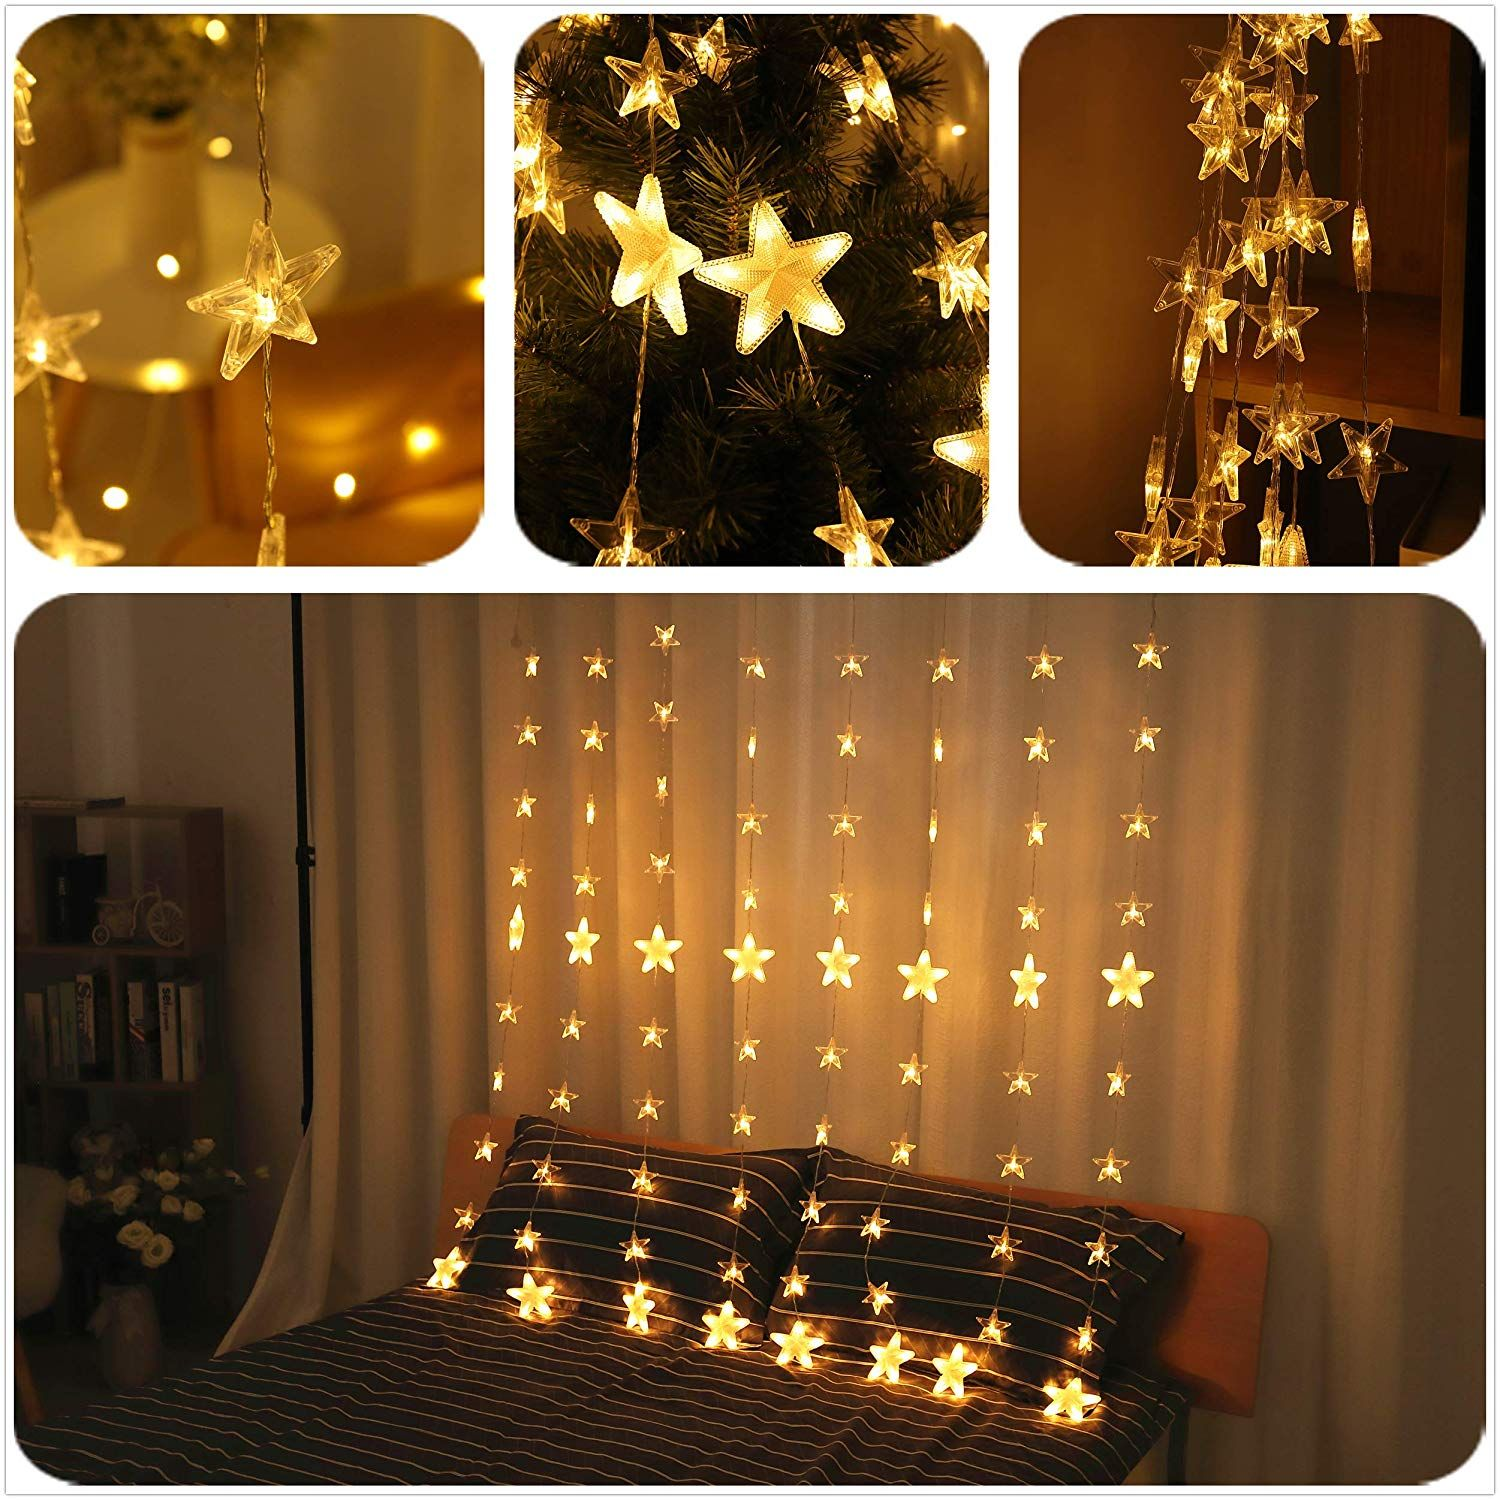 Star Lights Christmas Decor 144 Led 80 Star Curtain Lights Bedroom